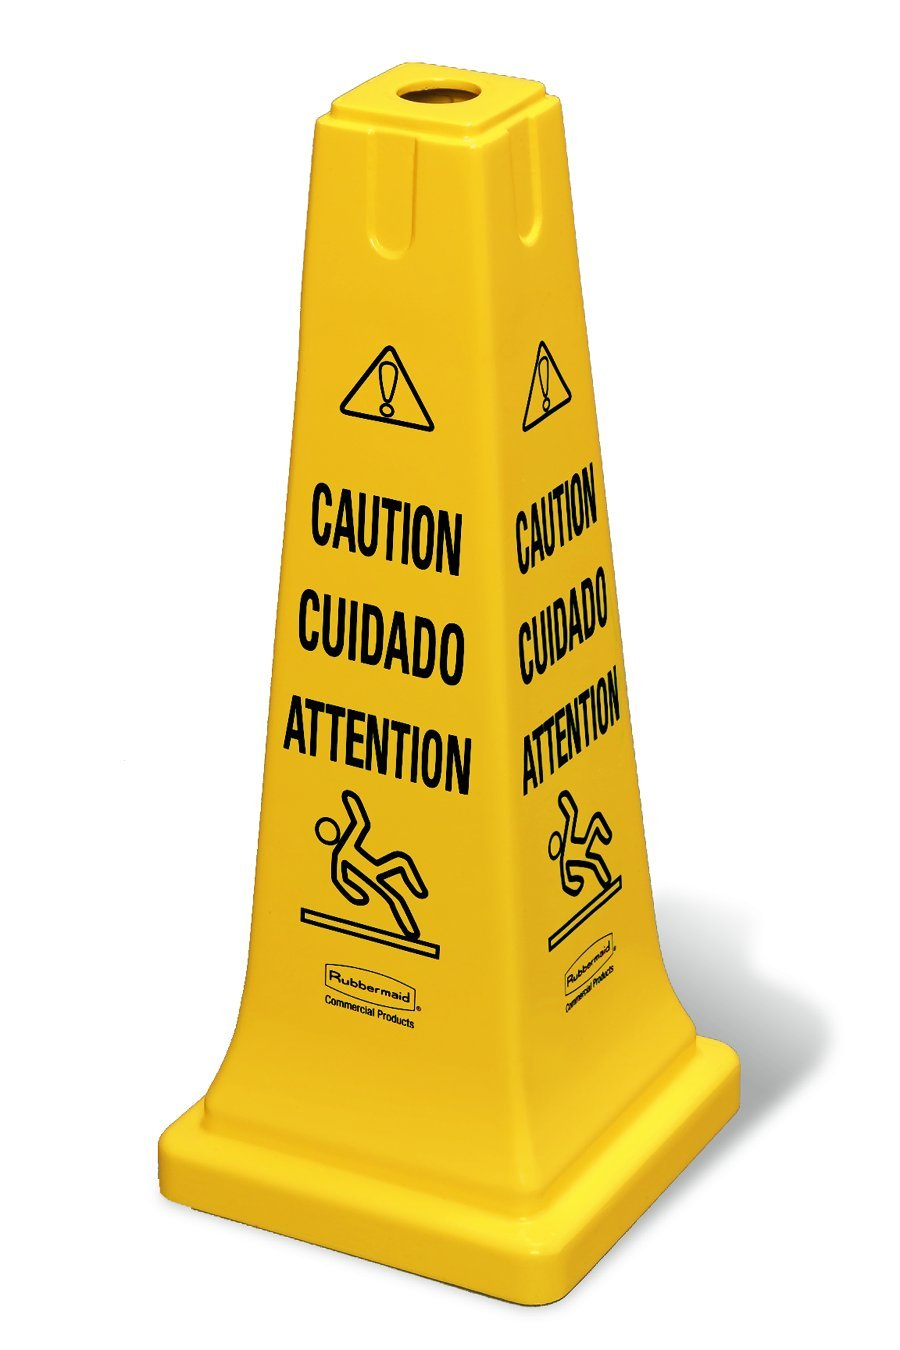 Rubbermaid Commercial Multi-Lingual Safety Cone with ''Caution'' Imprint, 25-3/4-Inch, Yellow